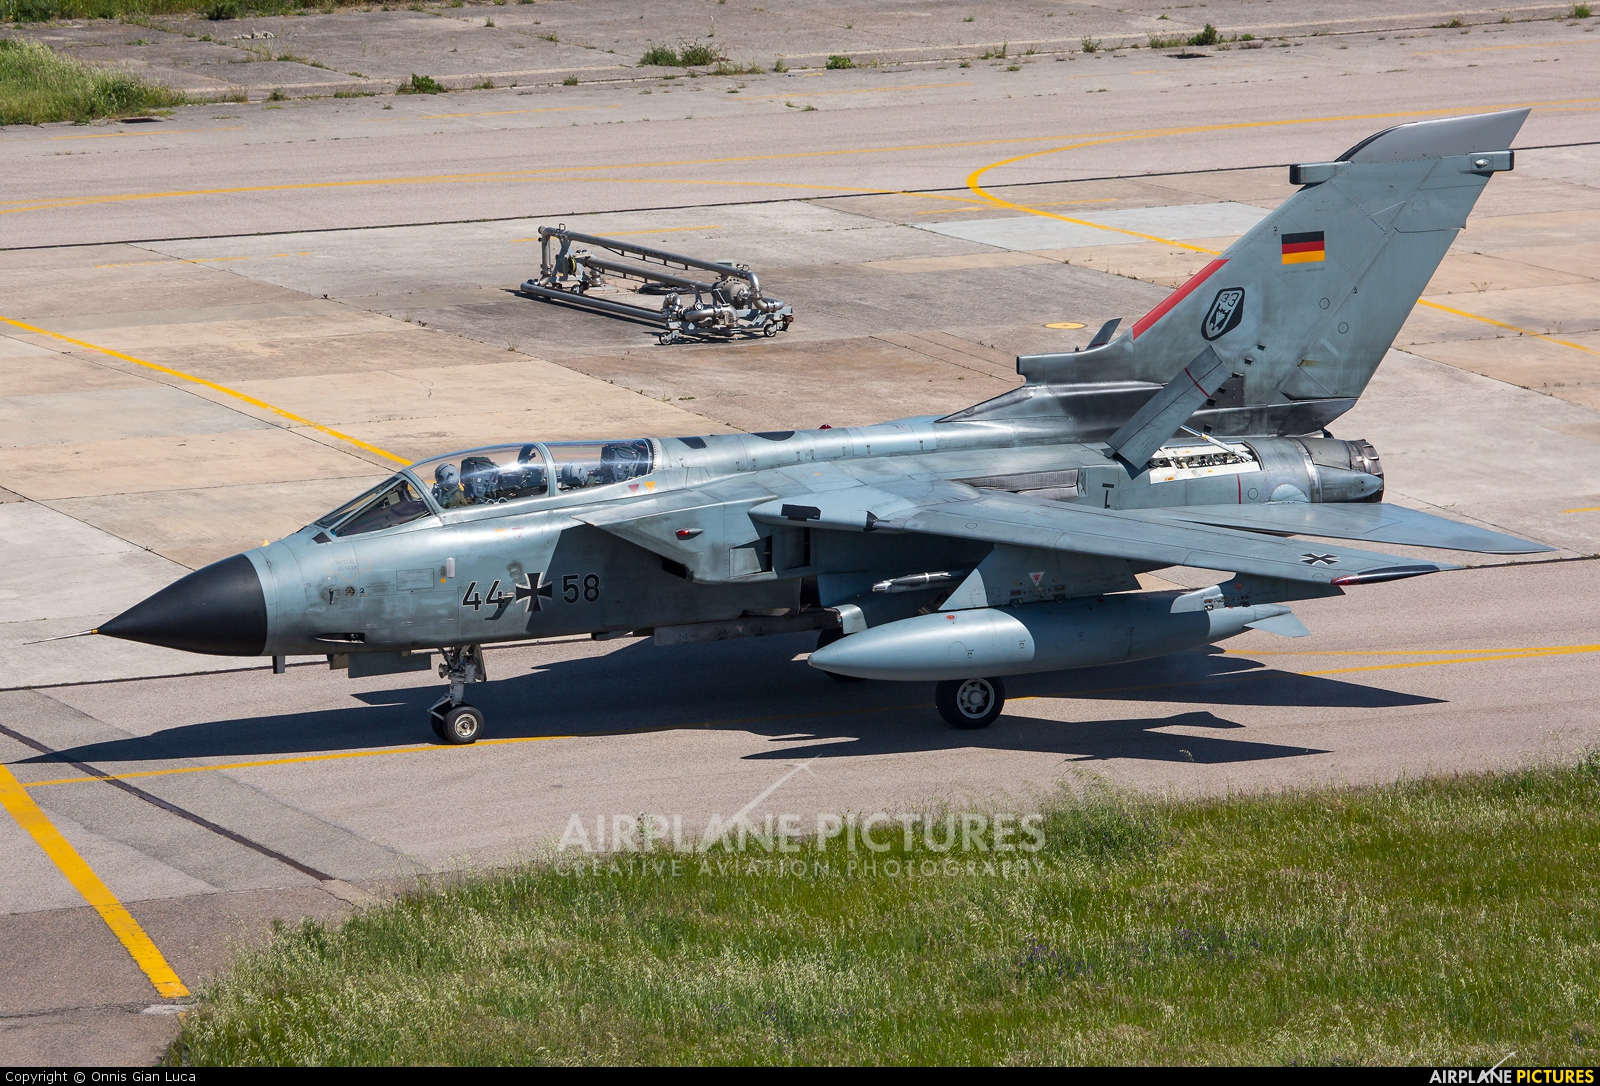 Germany - Air Force 44+58 aircraft at Decimomannu